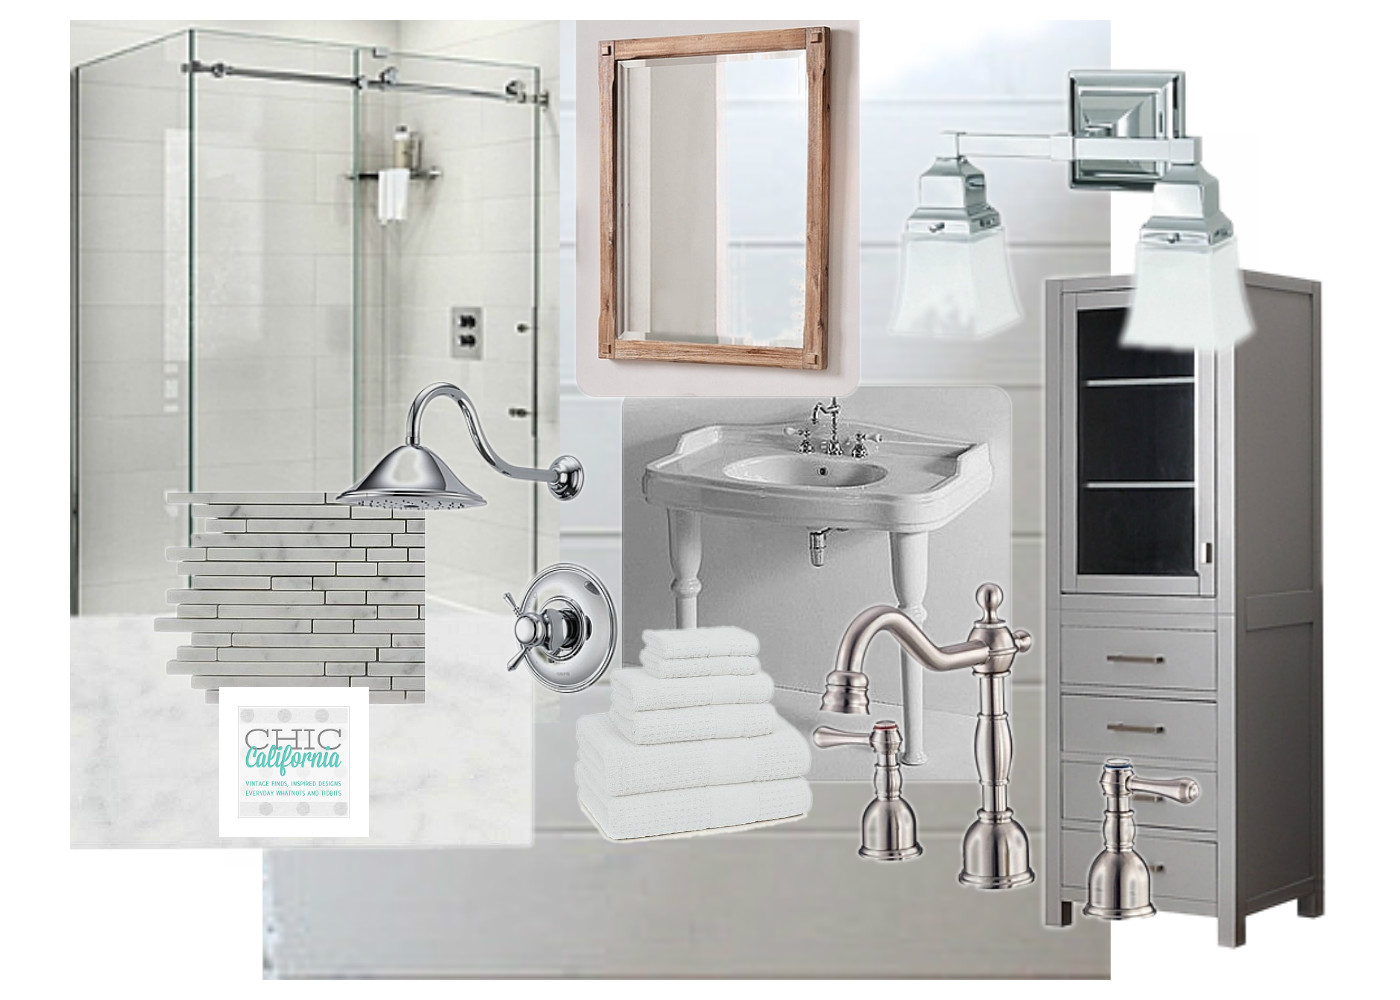 Vintage Modern Bathroom my dream vintage style classic bathroom - chic california